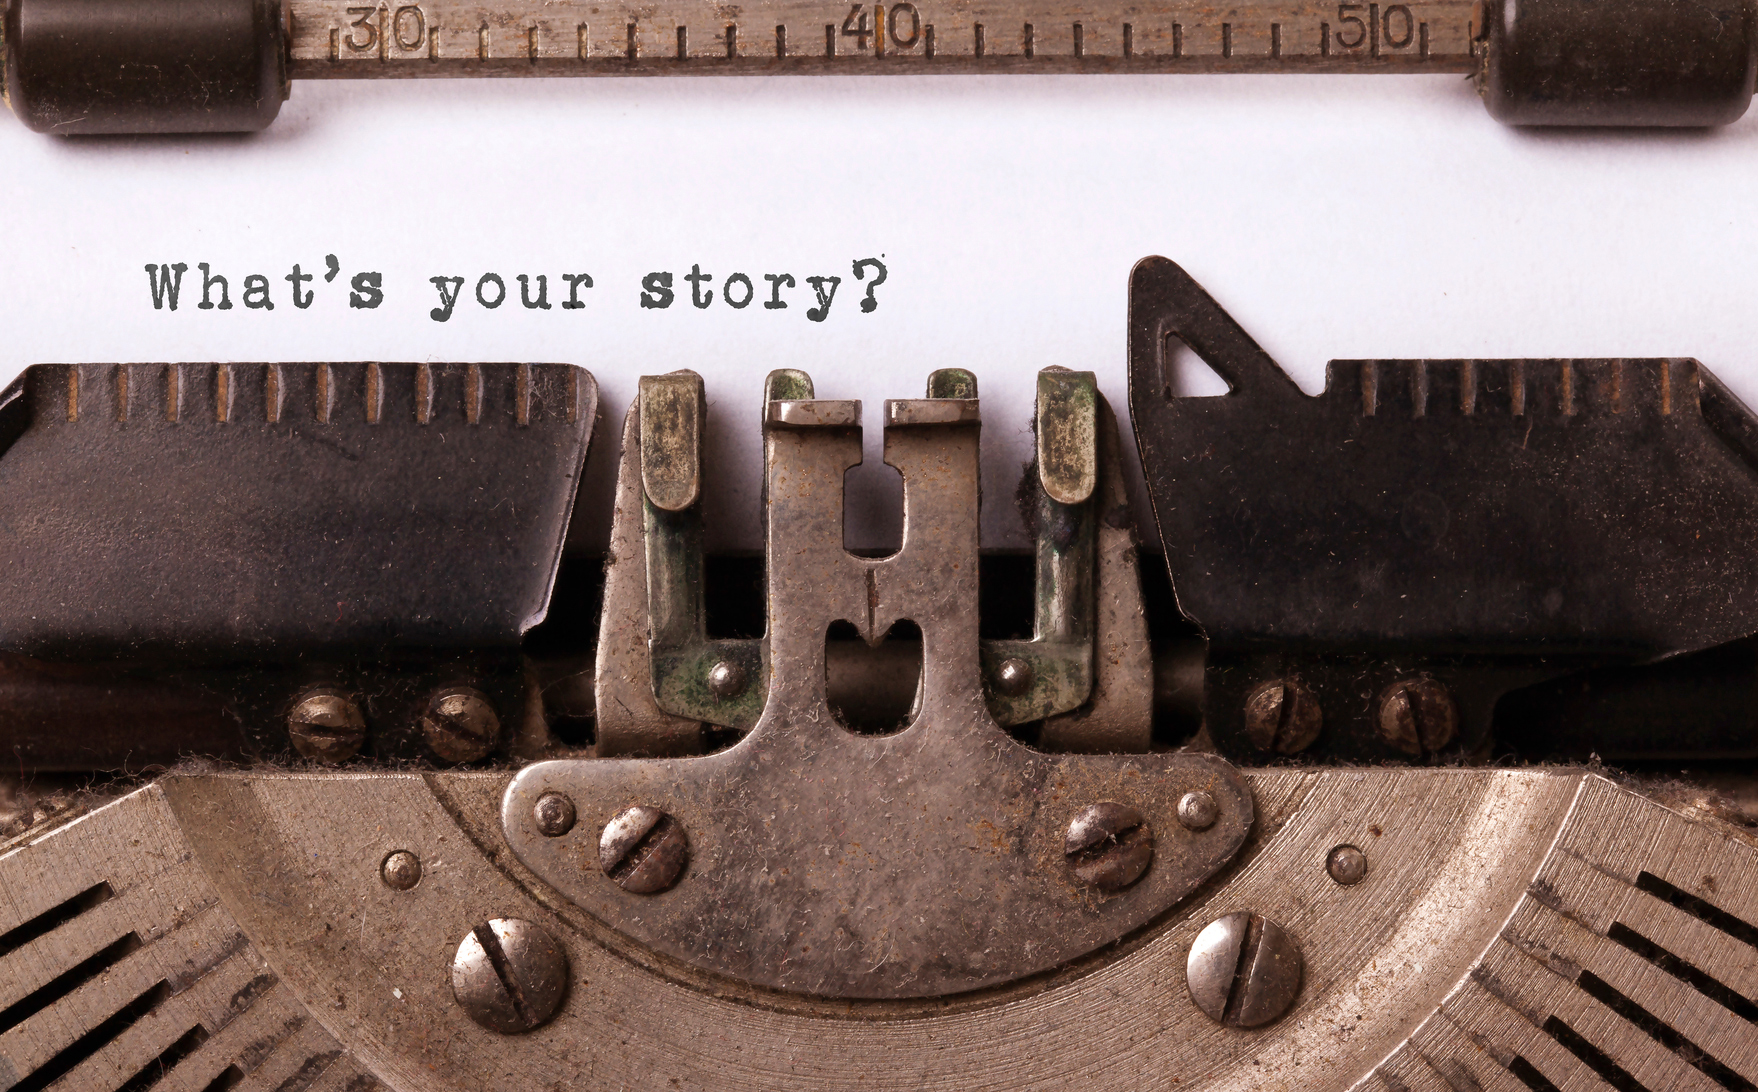 typewriter: what's your story?